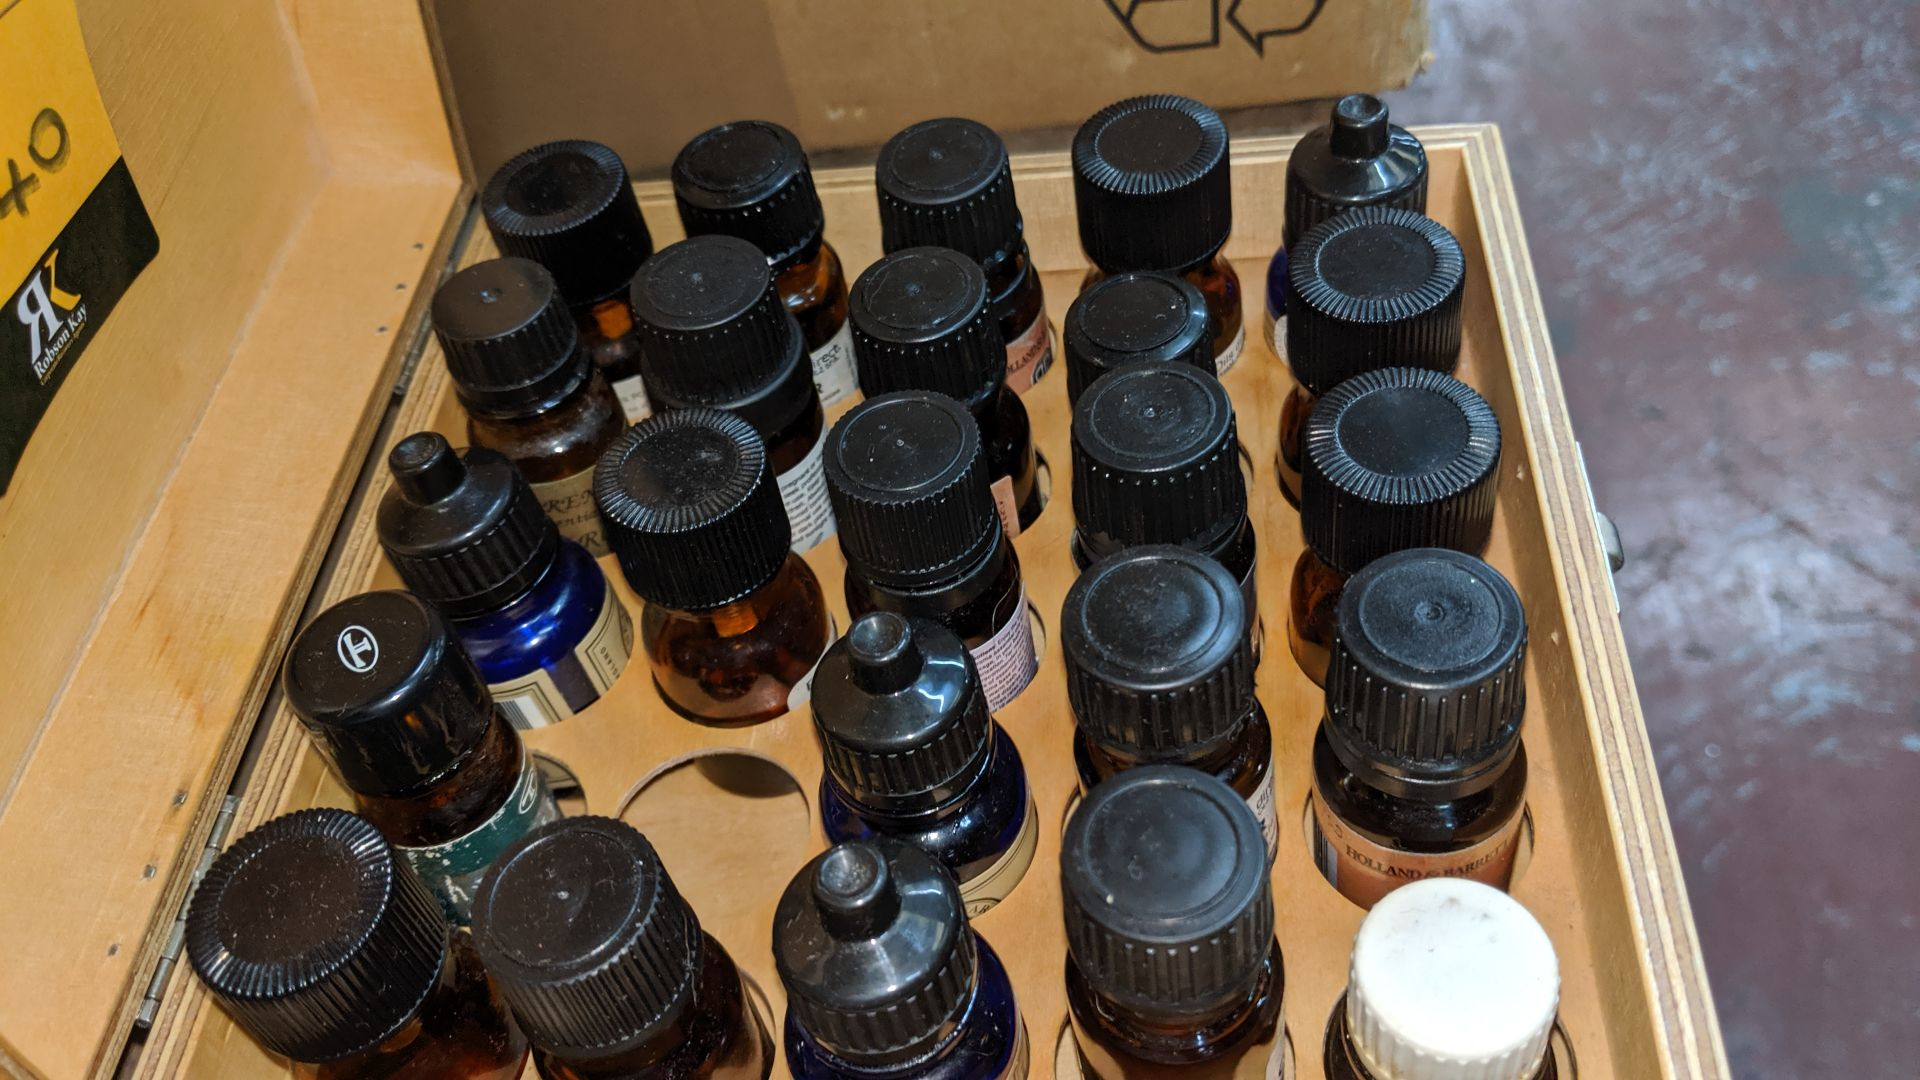 Lot 540 - Box & contents of assorted essential oils. This is one of a large number of lots used/owned by One